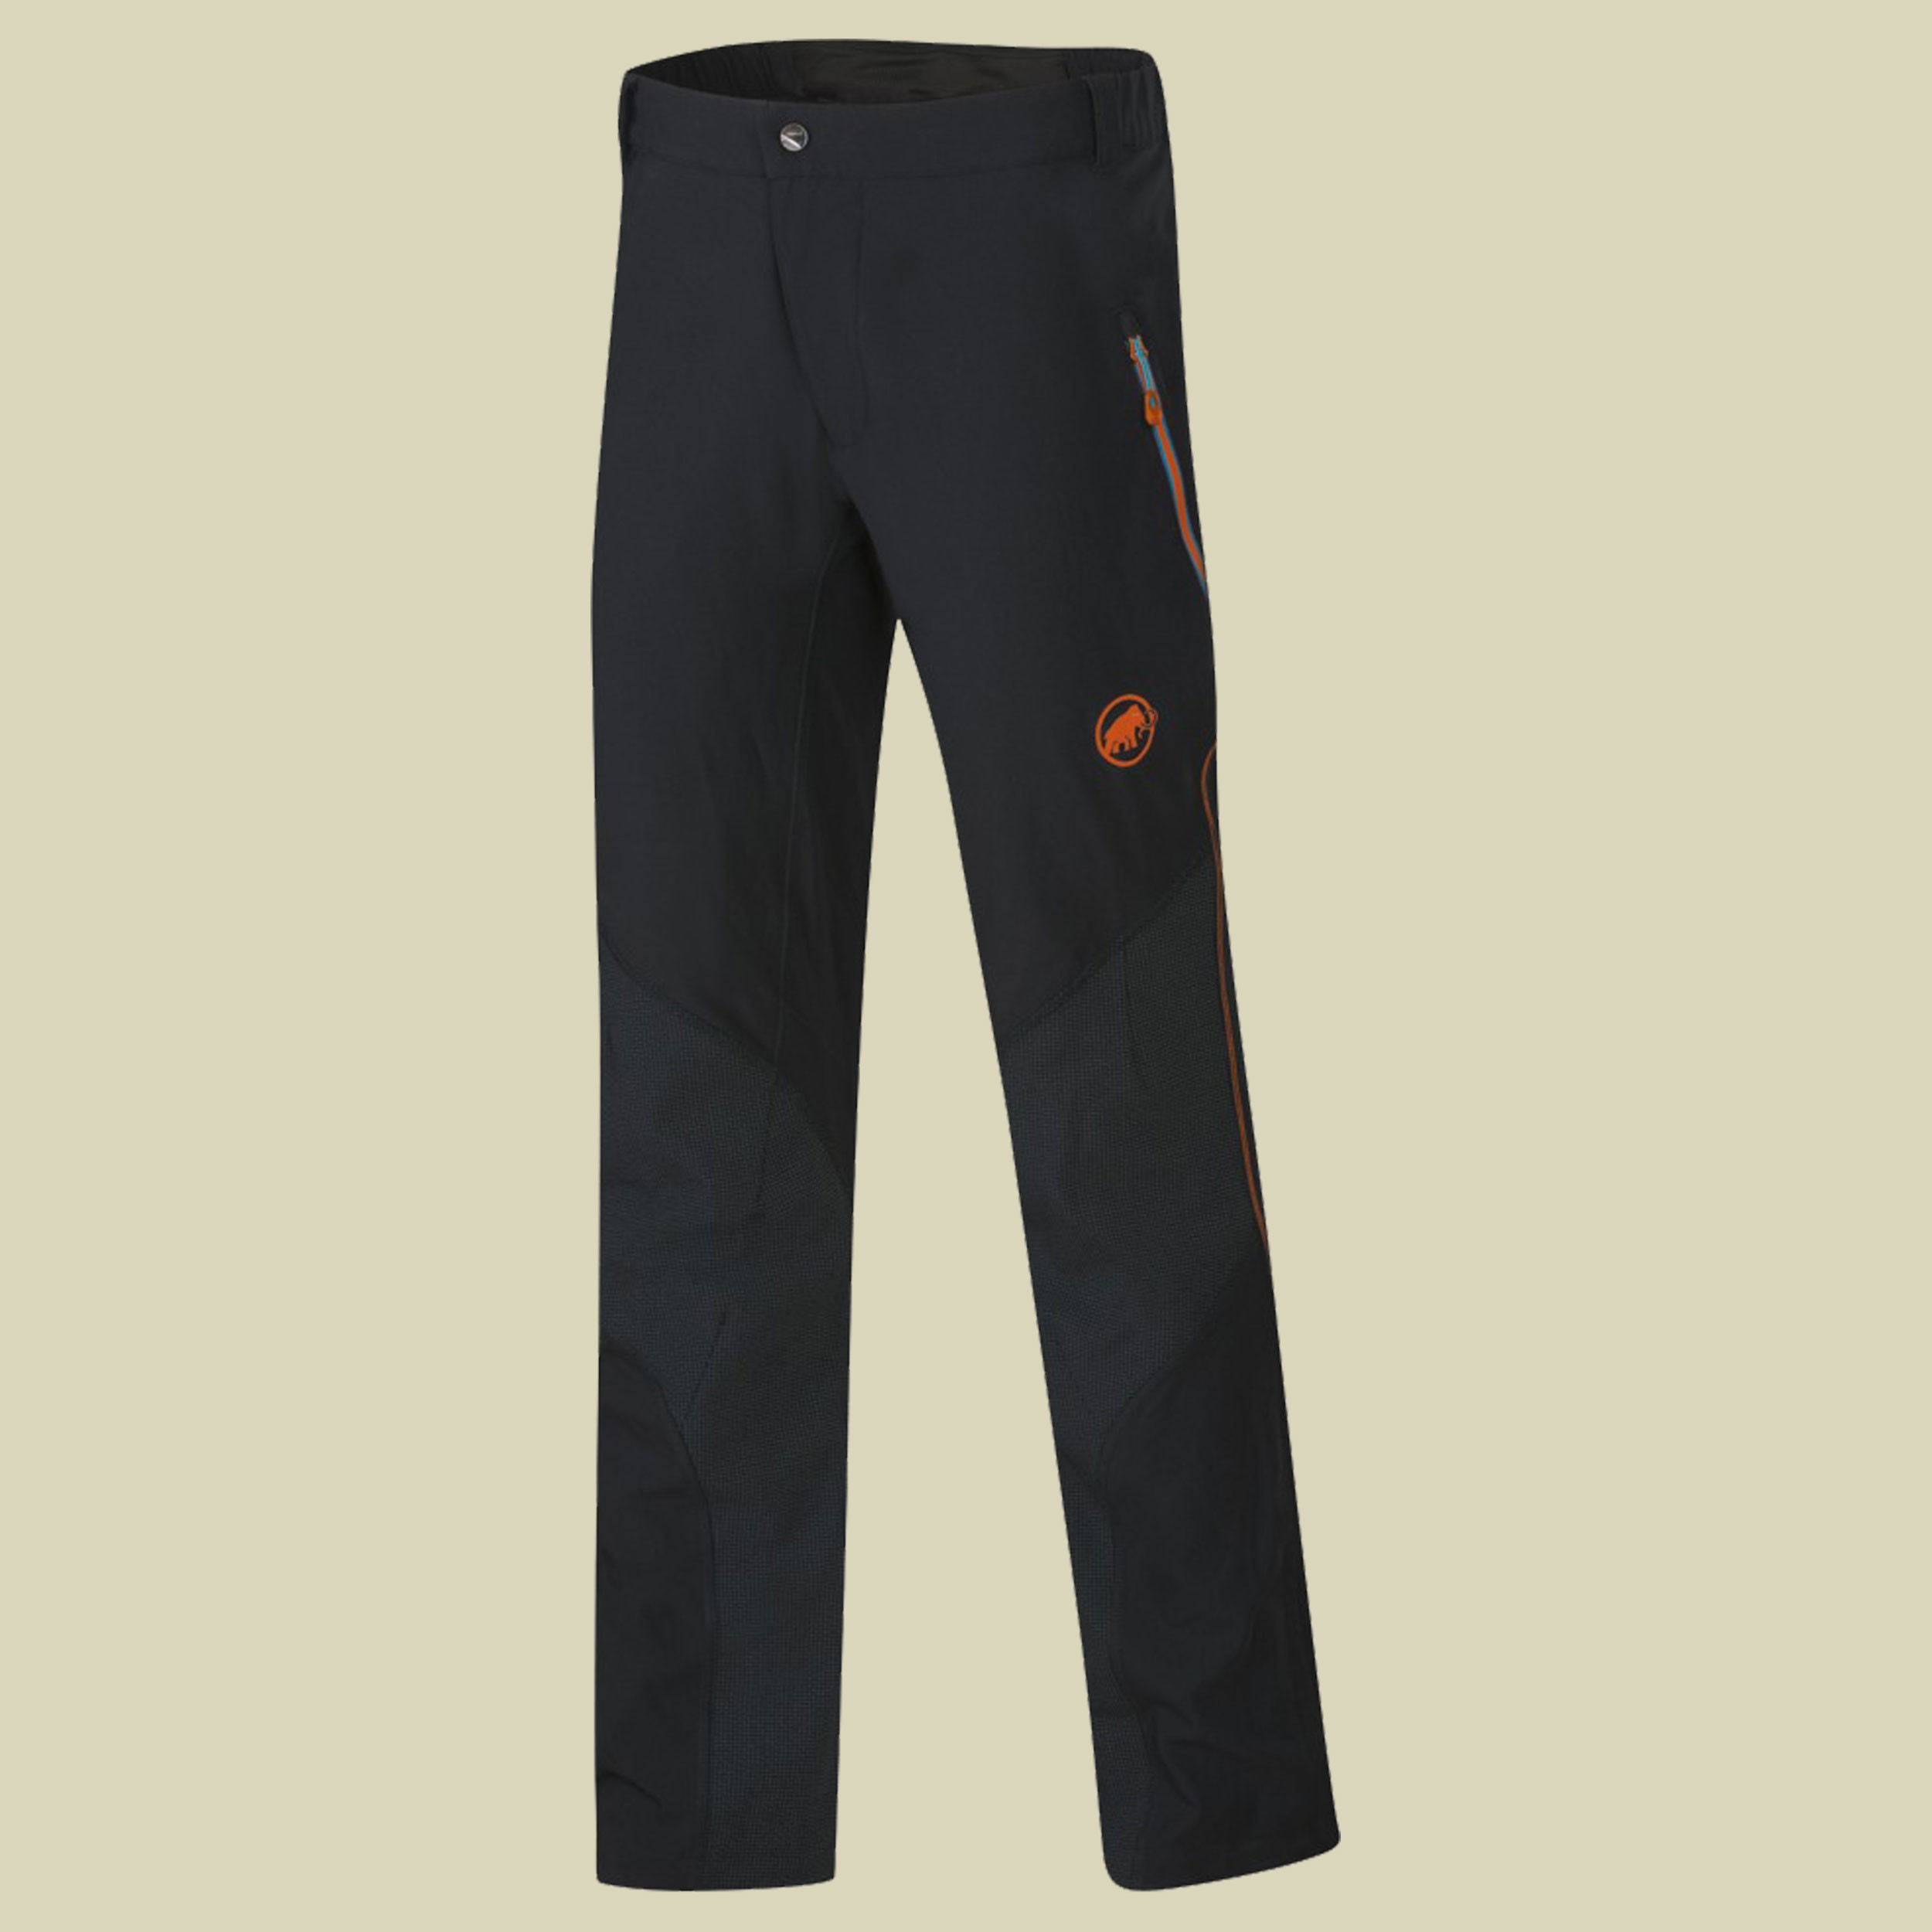 Eisfeld Light SO Pants Men 1020-09790